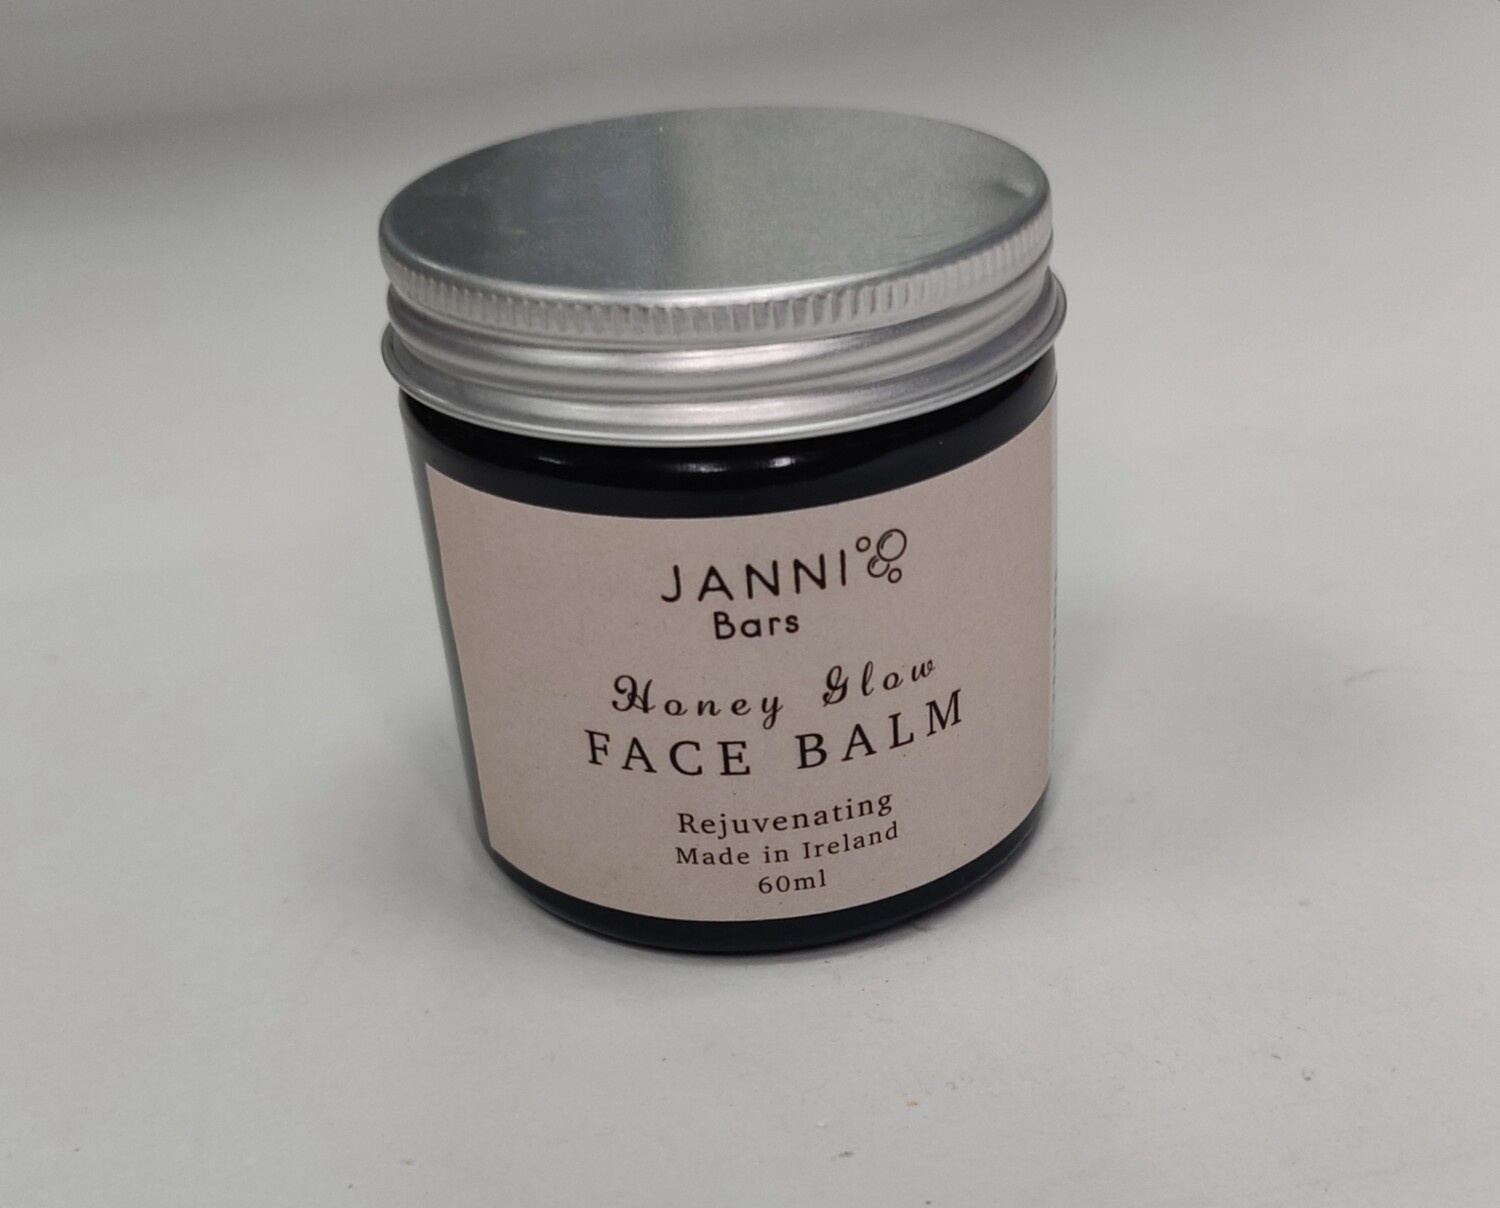 Janni Honey Glow Face Balm 60ml